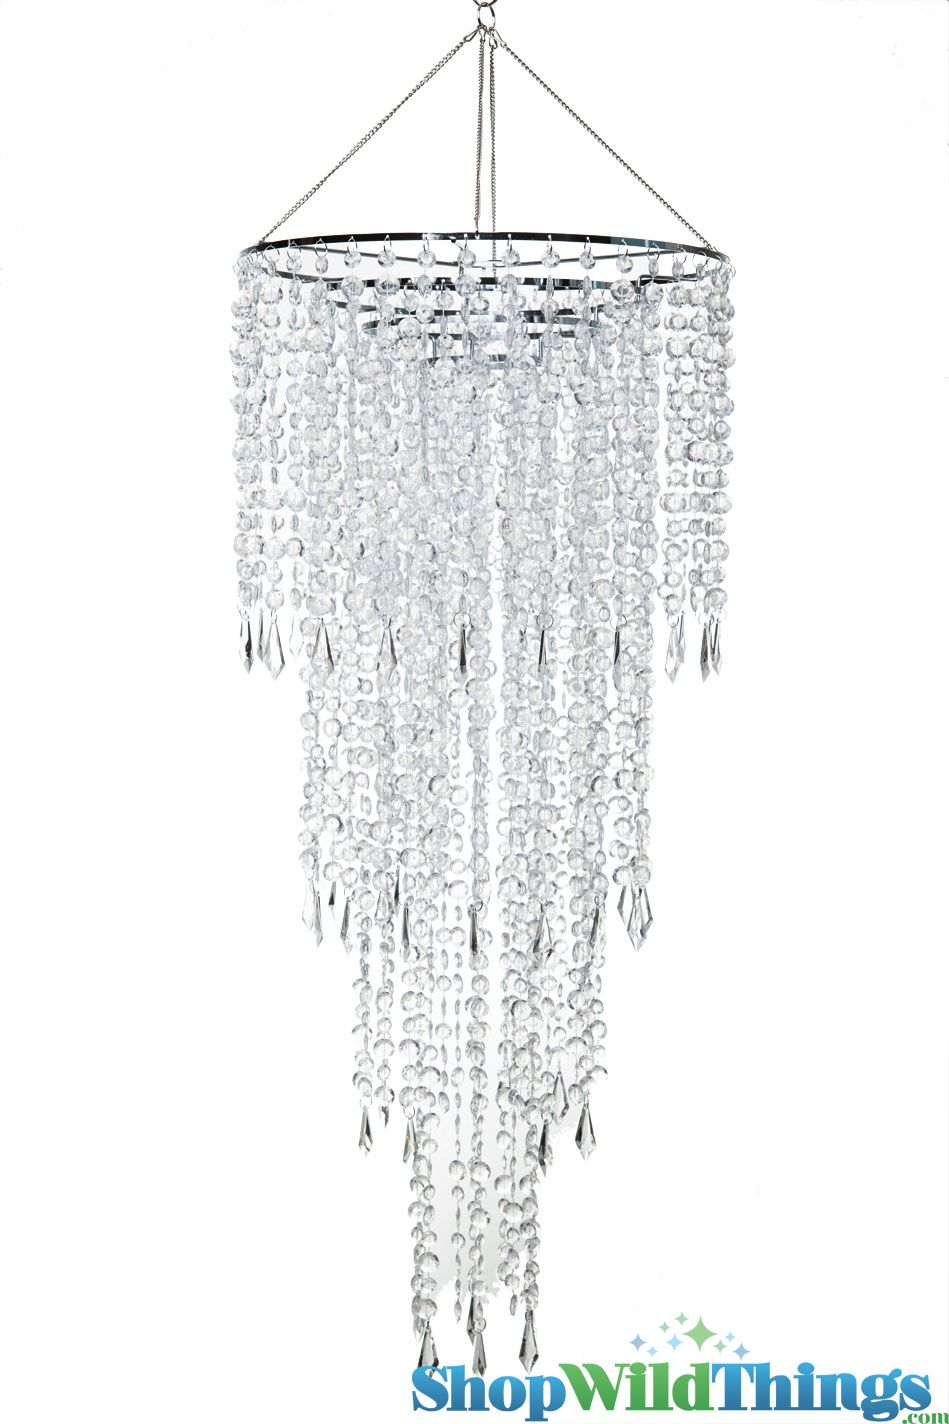 Crystal Beaded Chandelier For Parties And Events Largethis